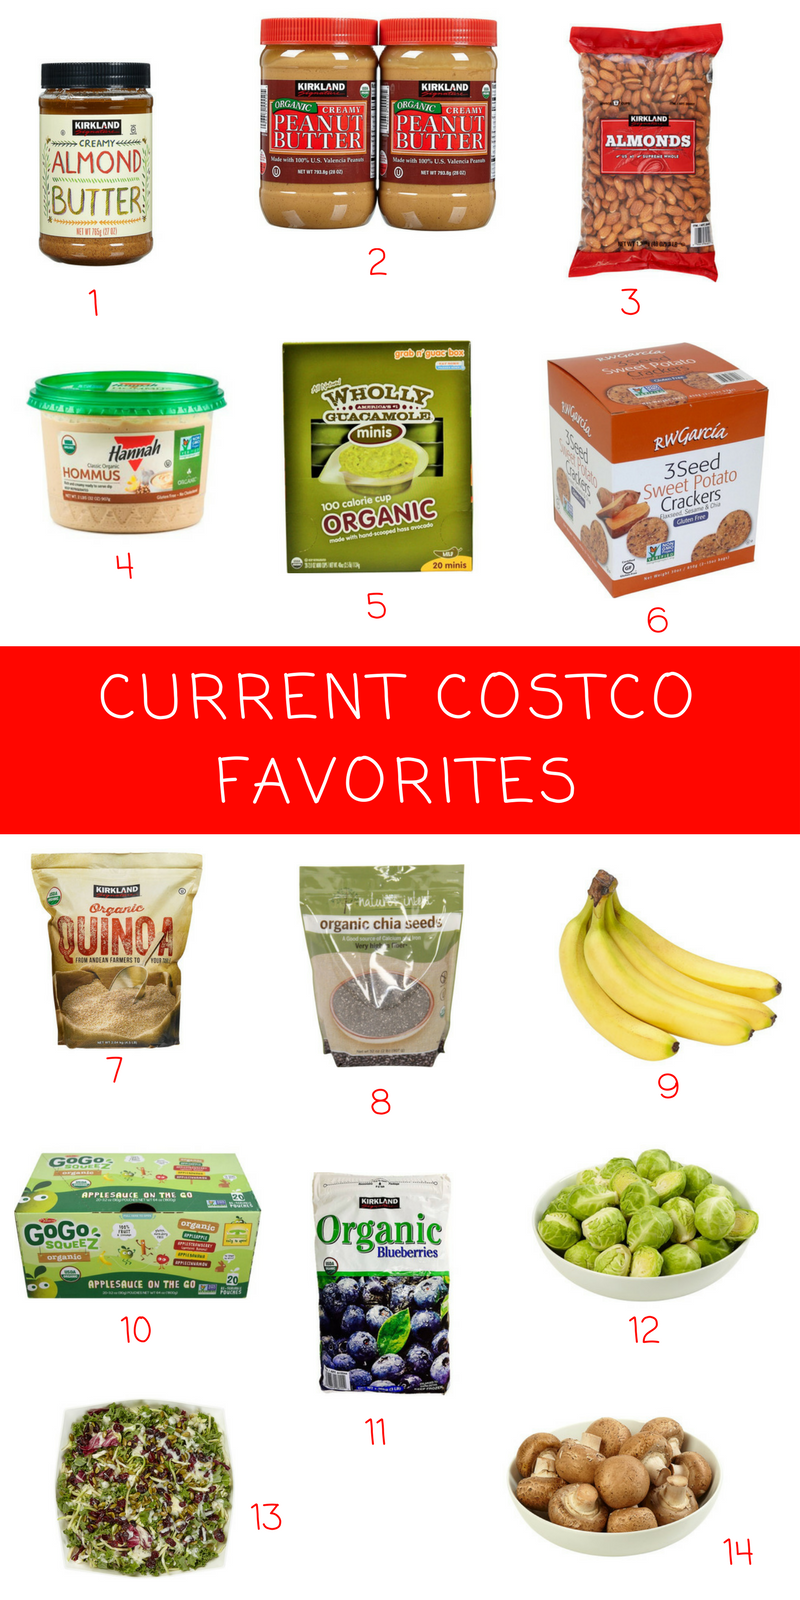 CURRENT COSTCO FAVORITES